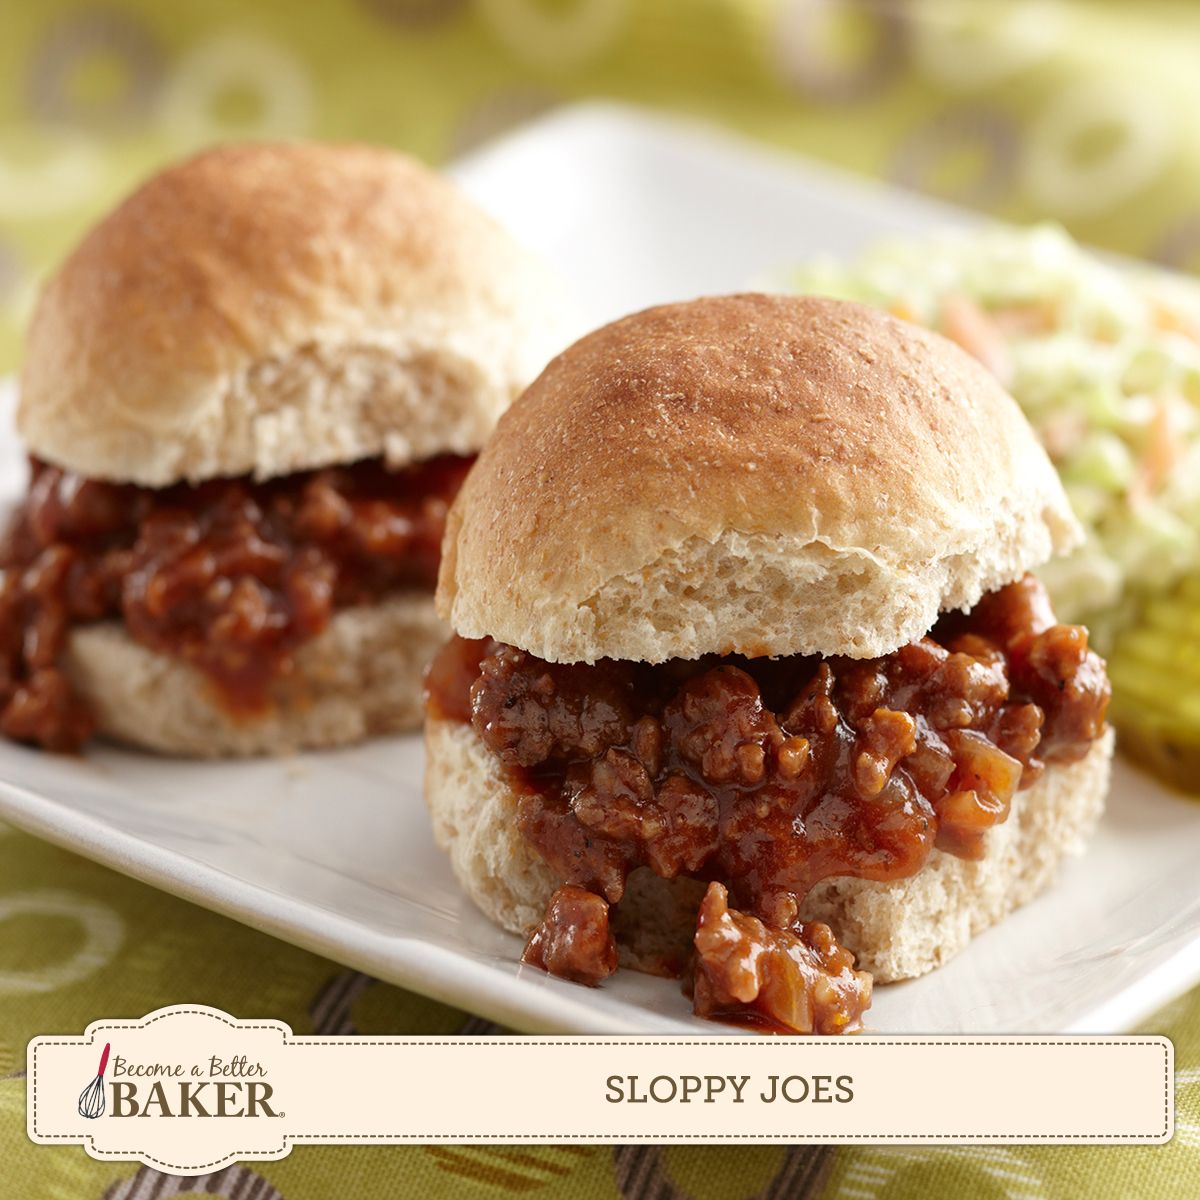 Serve these snackable Sloppy Joes on homemade buns with pickles and onions for a delicious summertime snack